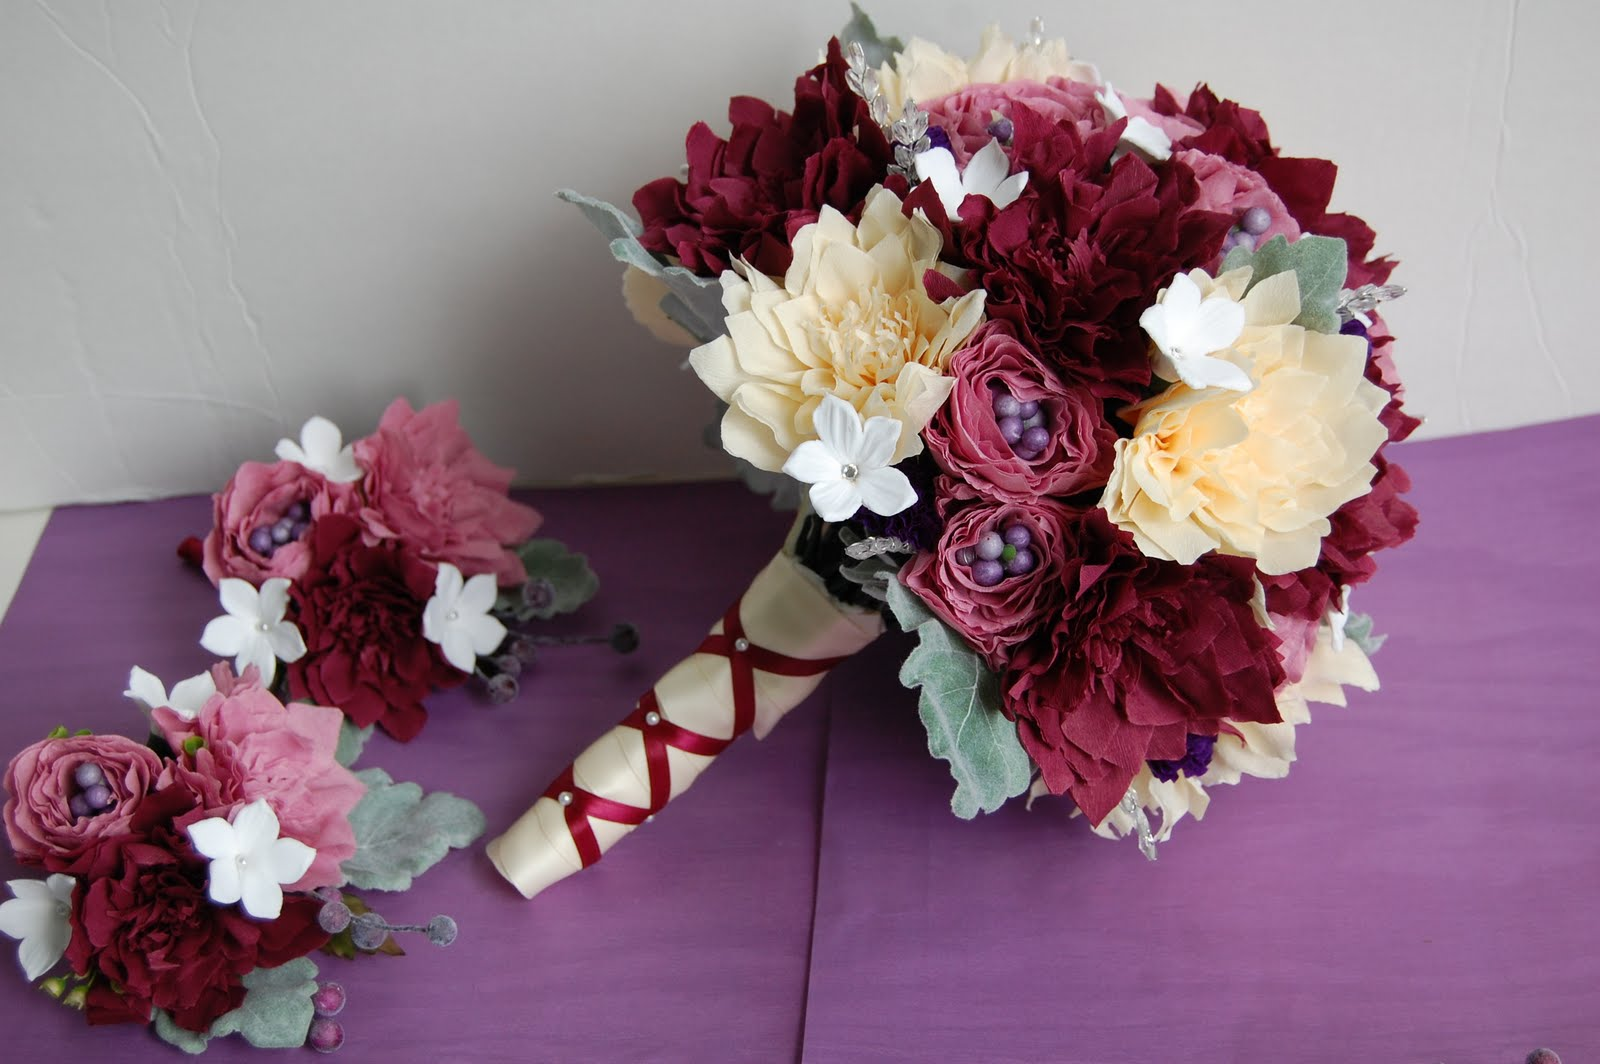 Dahlia wedding bouquet for MaryAnn | Handmade PaPer FloweRs by Maria ...